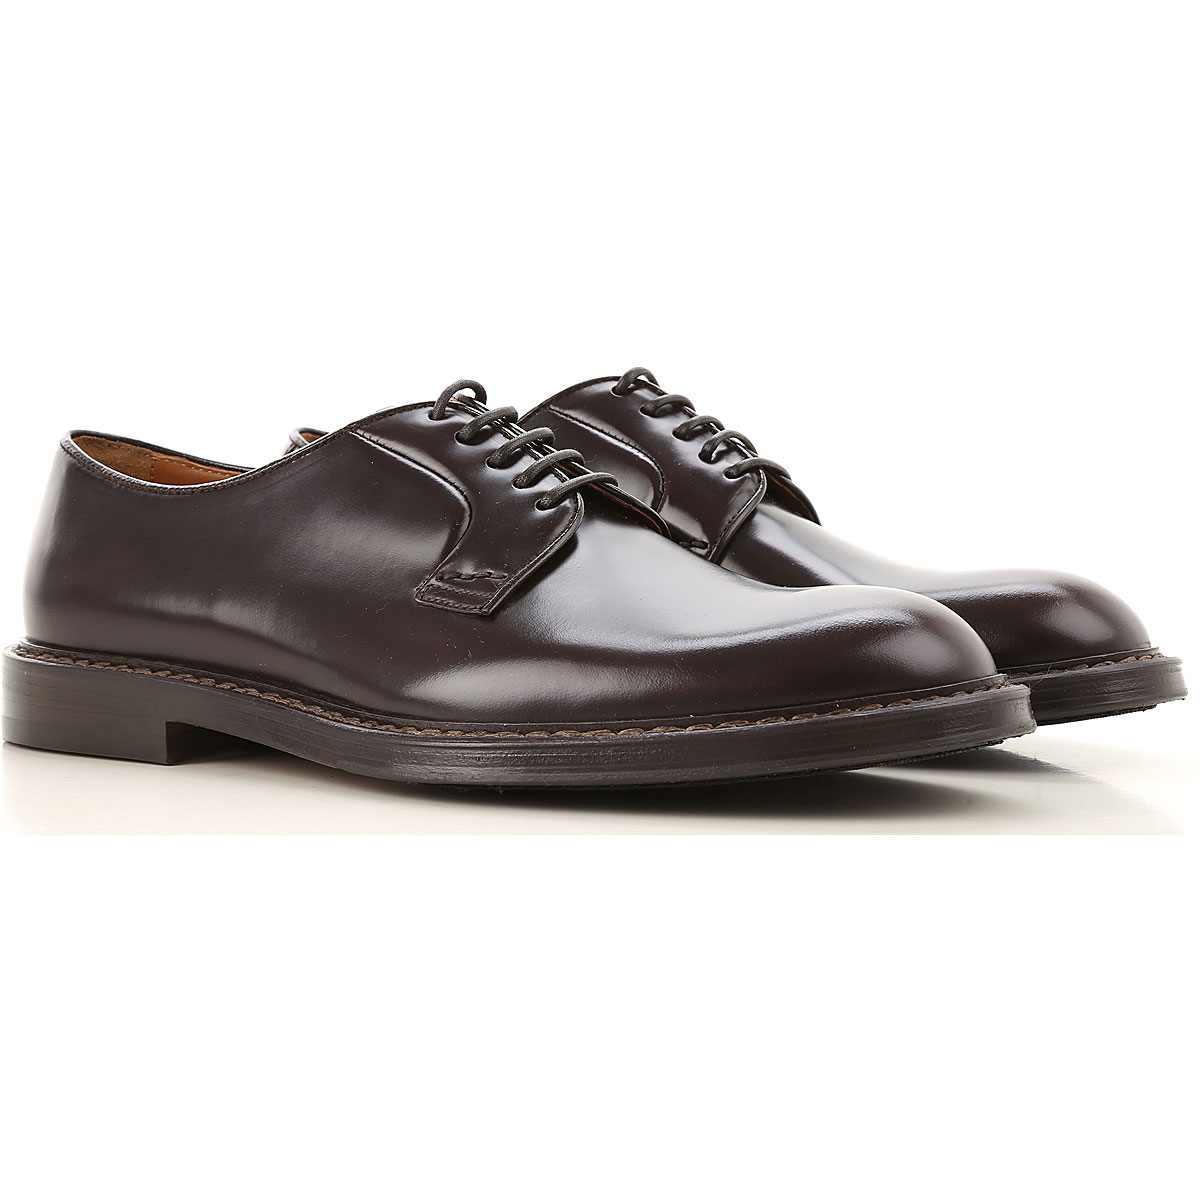 Doucals Lace Up Shoes for Men Oxfords, Derbies and Brogues On Sale, Dark Brown, Leather, 2019, 10 10.25 10.5 6.5 7